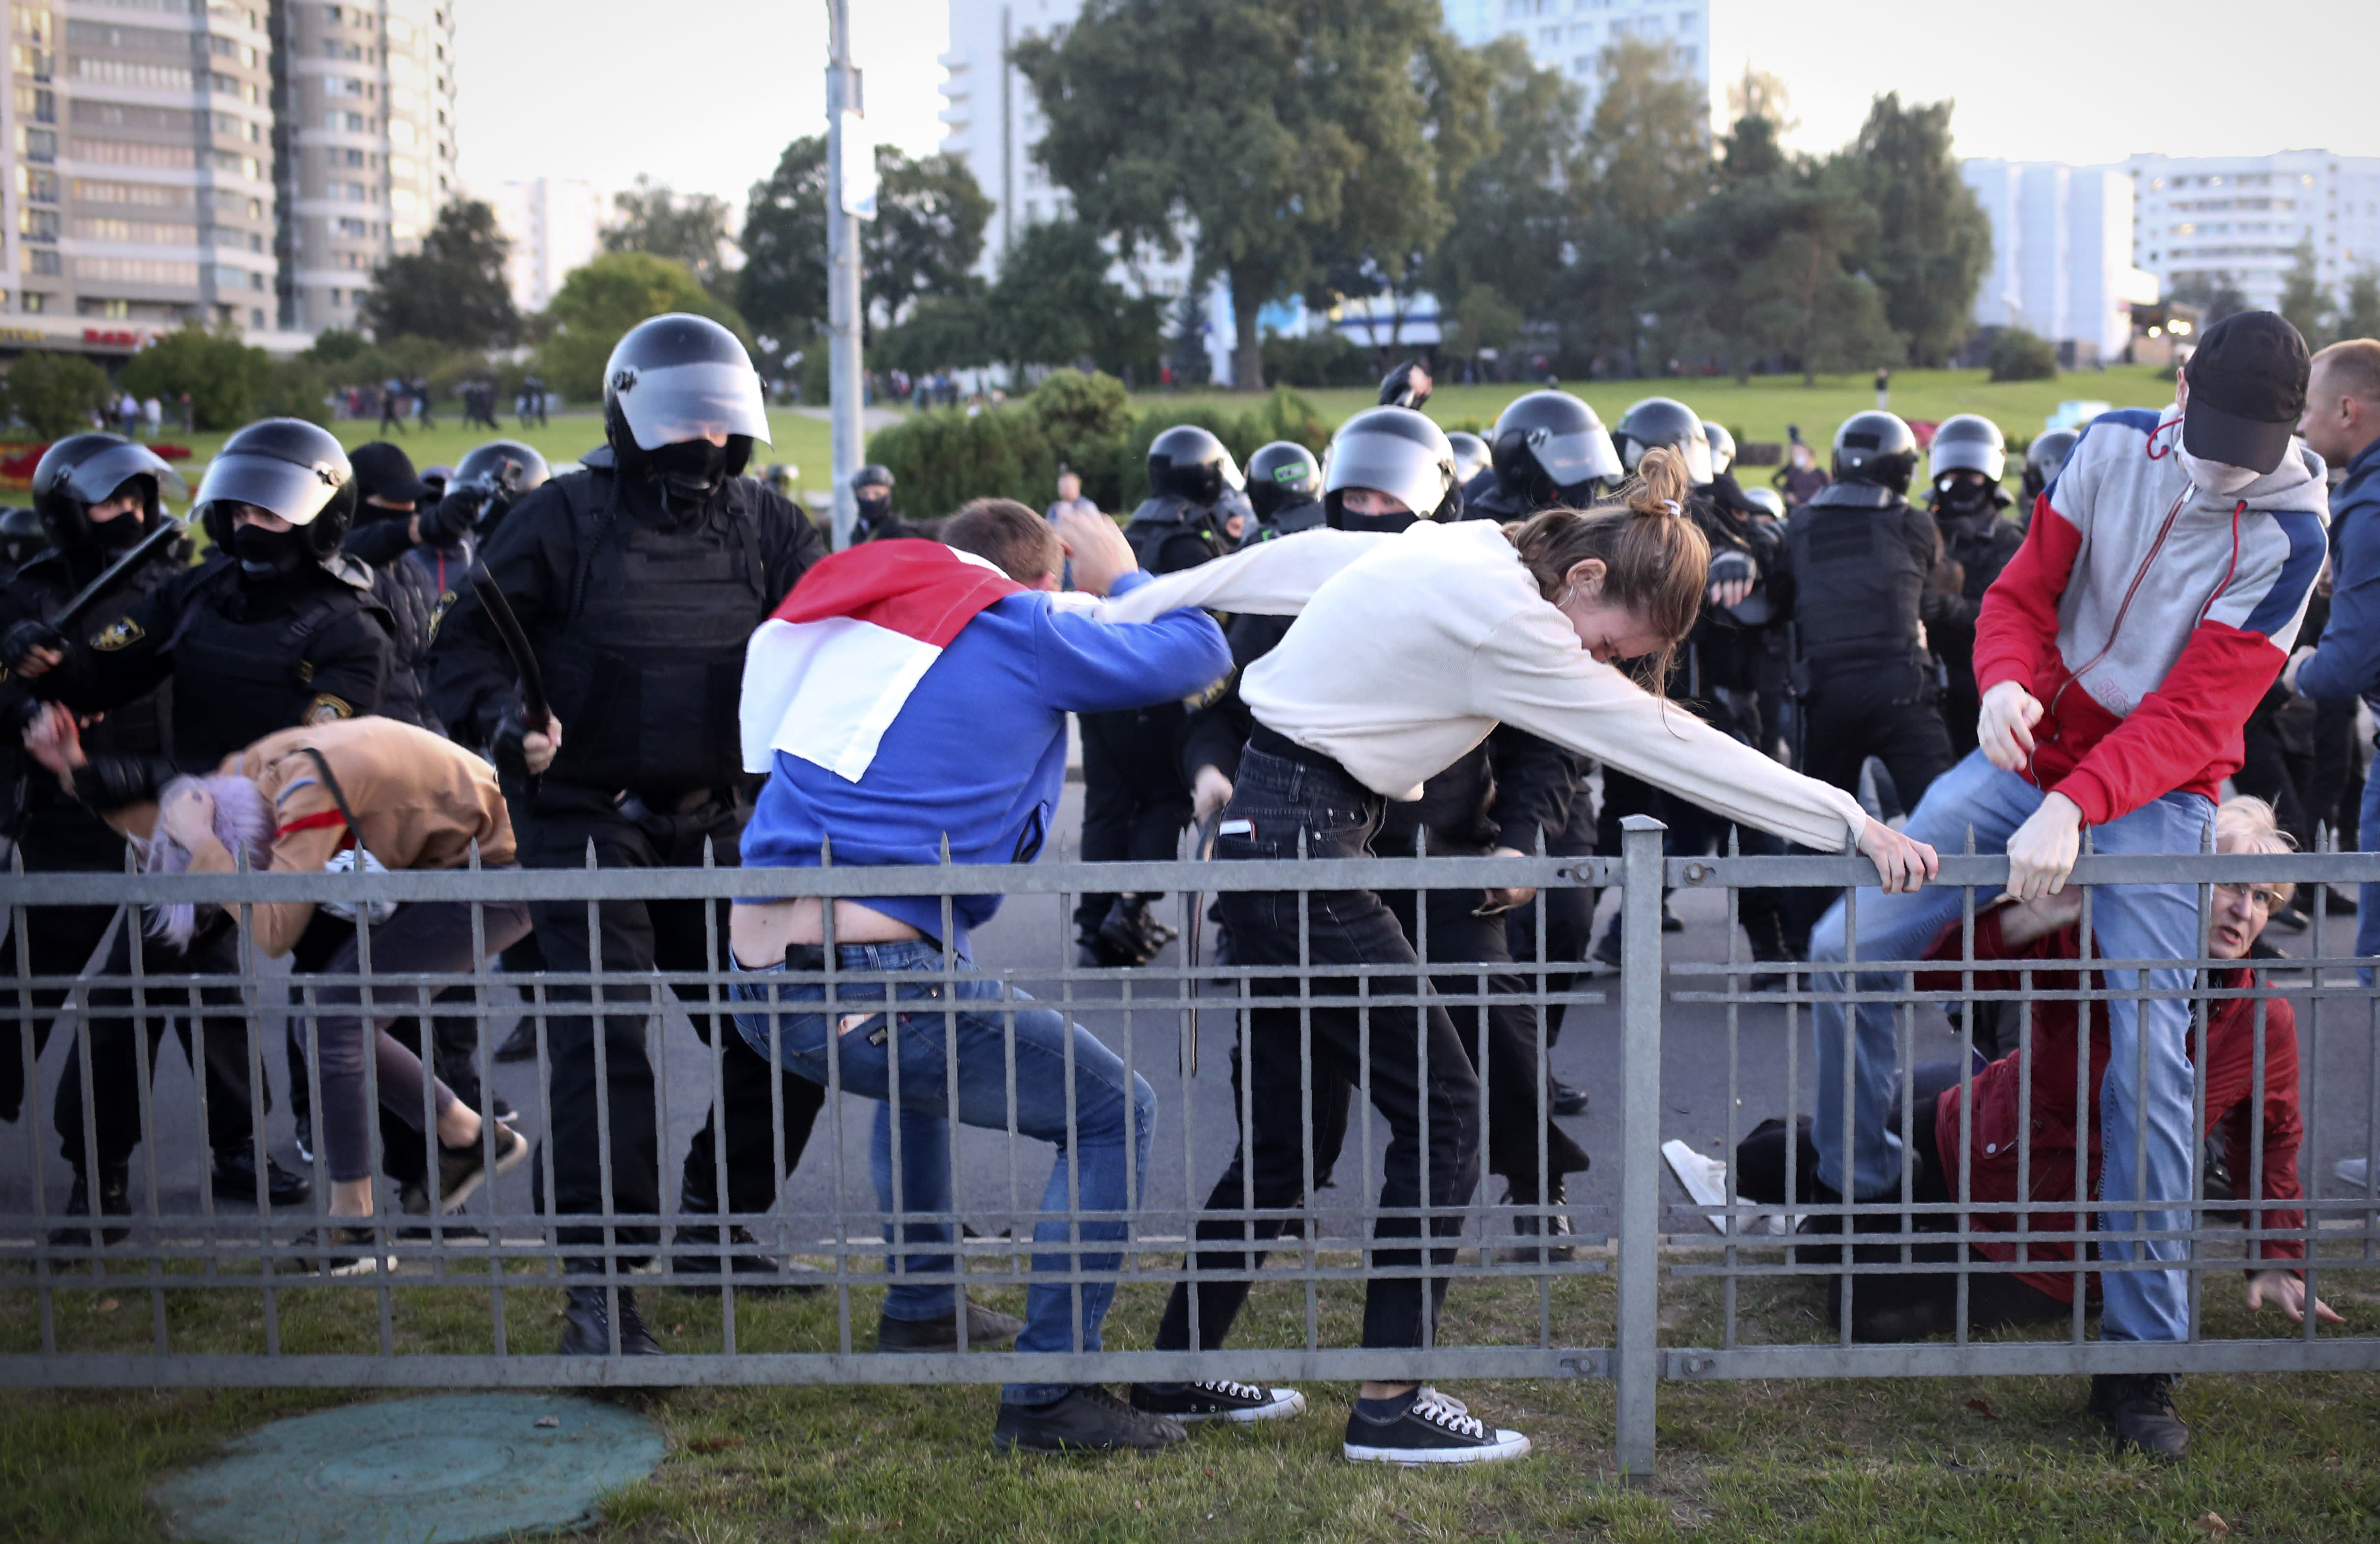 Riot police detain protesters during an opposition rally to protest the presidential inauguration in Minsk, Belarus, Wednesday, Sept. 23, 2020. Belarus President Alexander Lukashenko has been sworn in to his sixth term in office at an inaugural ceremony that was not announced in advance amid weeks of huge protests saying the authoritarian leader's reelection was rigged. Hundreds took to the streets in several cities in the evening to protest the inauguration. (AP Photo/TUT.by)